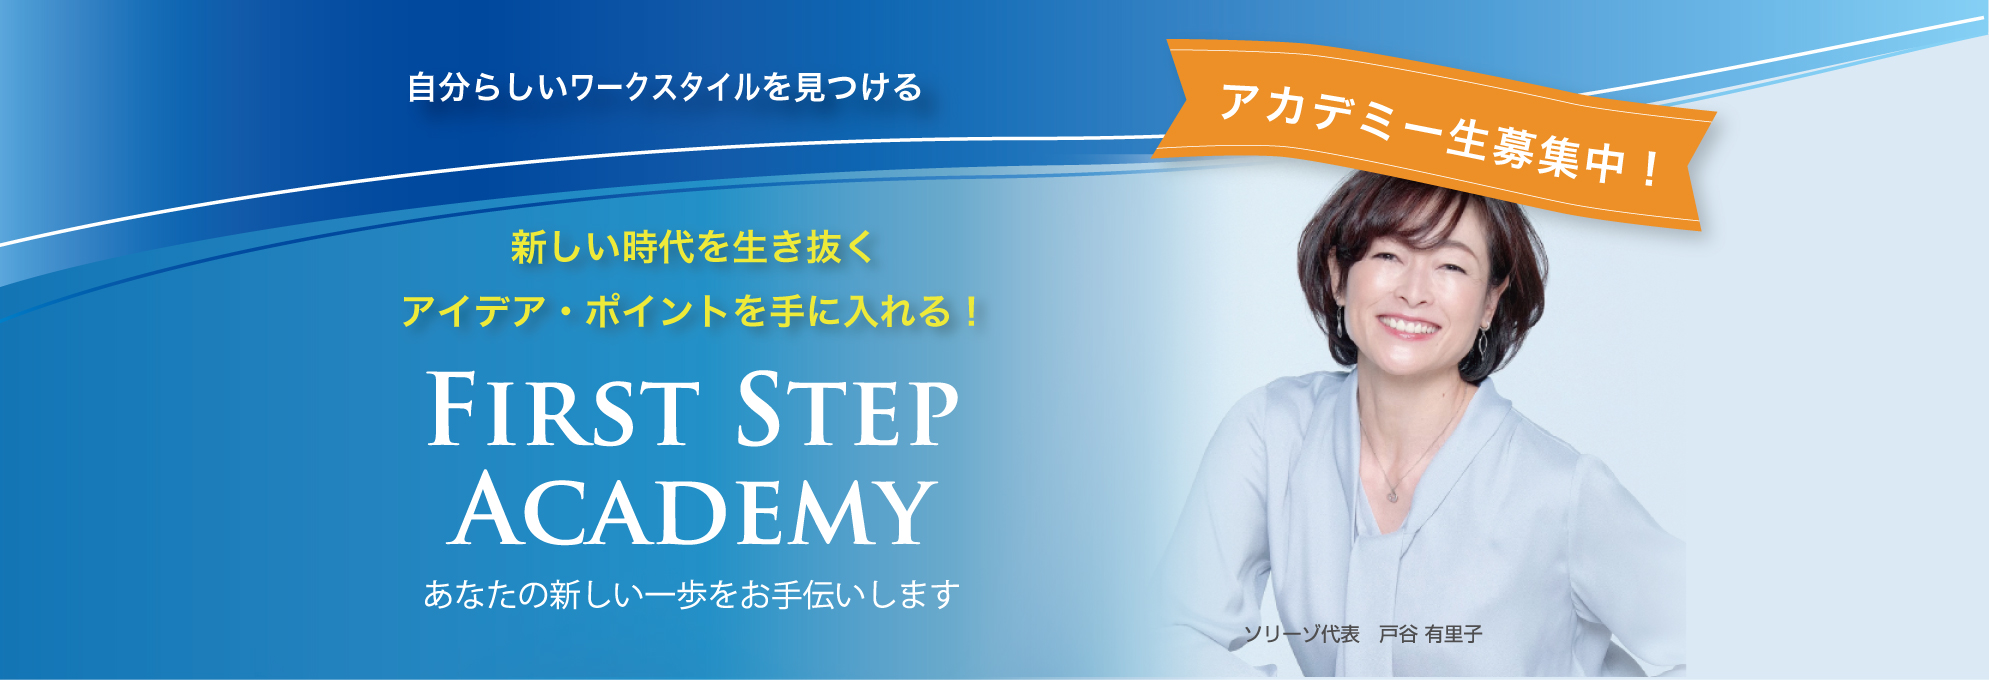 First Step Academy あなたの新しい一歩をお手伝いします